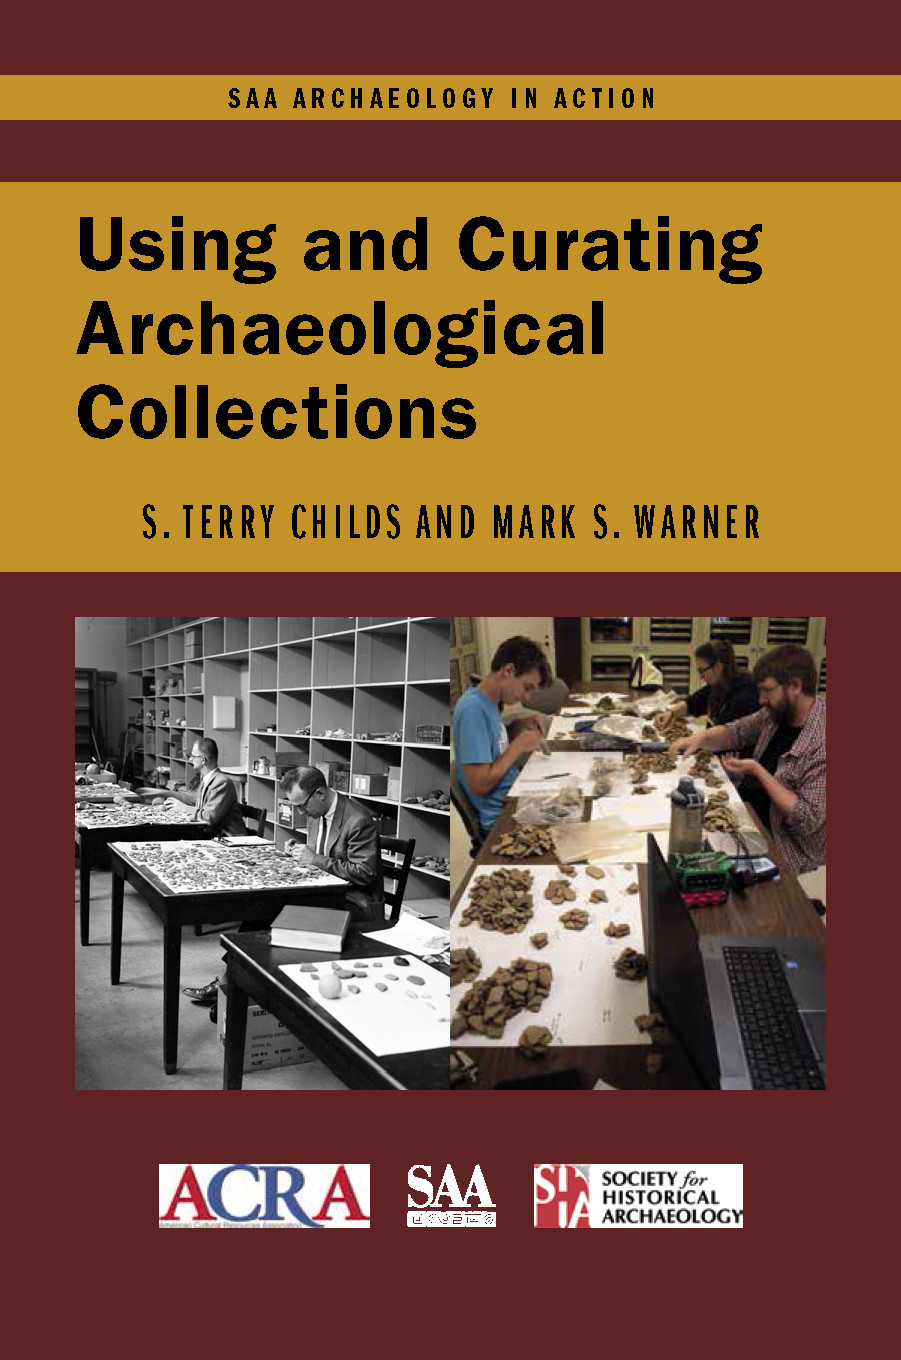 Using and Curating Archaeological Collections